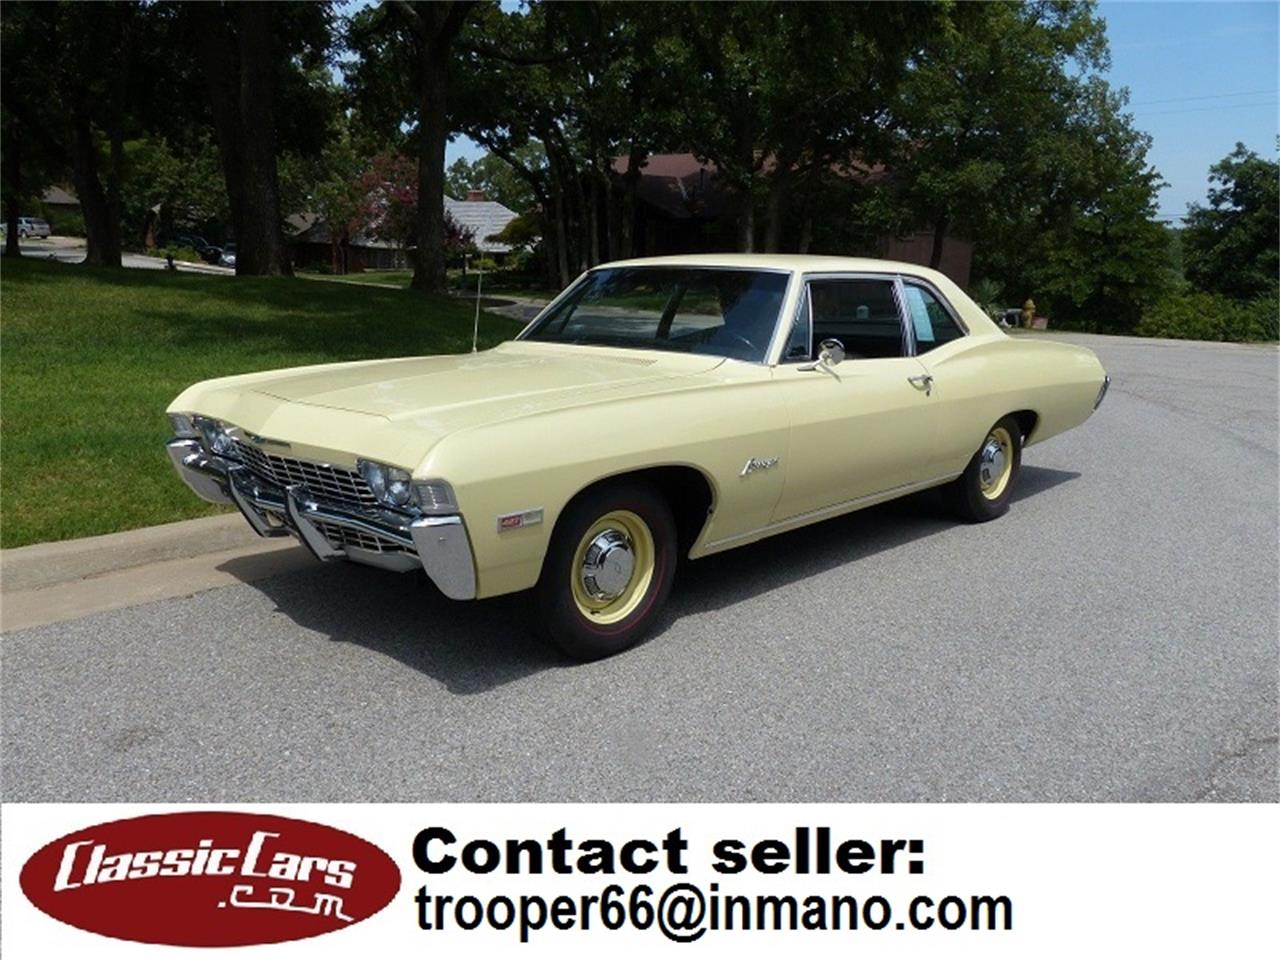 1968 Chevrolet Biscayne (CC-1247333) for sale in St. Louis, Missouri